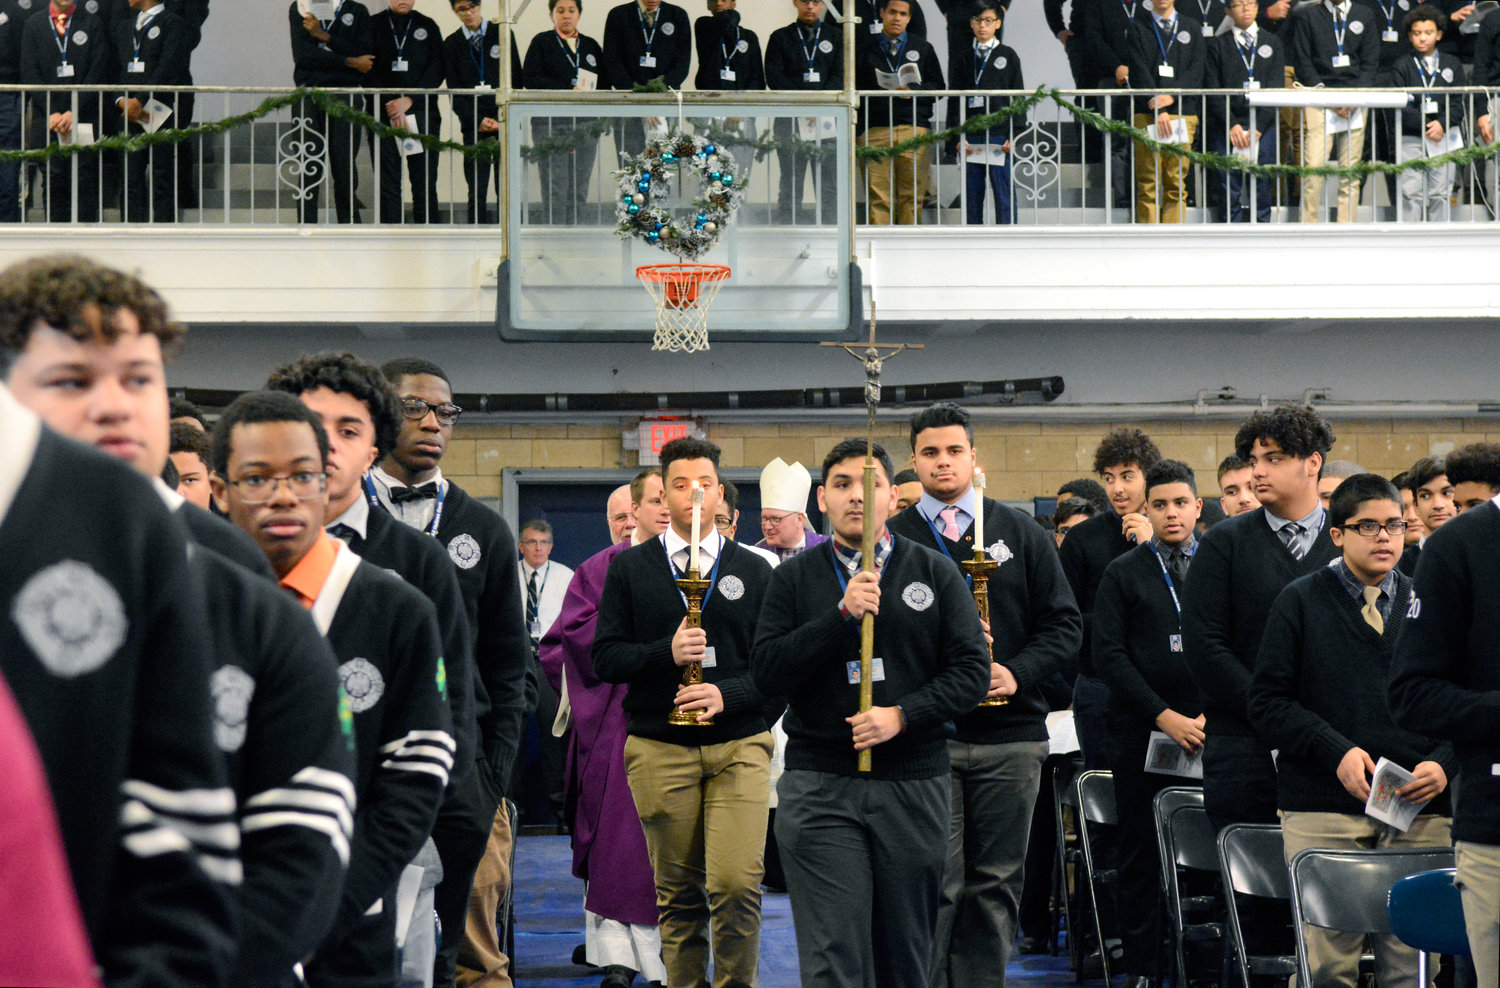 All Hallows High School students participate in the entrance procession during the Dec. 19 Mass Cardinal Dolan offered at the school. The liturgy was part of a mission project conducted that week by Emmanuel School of Mission.